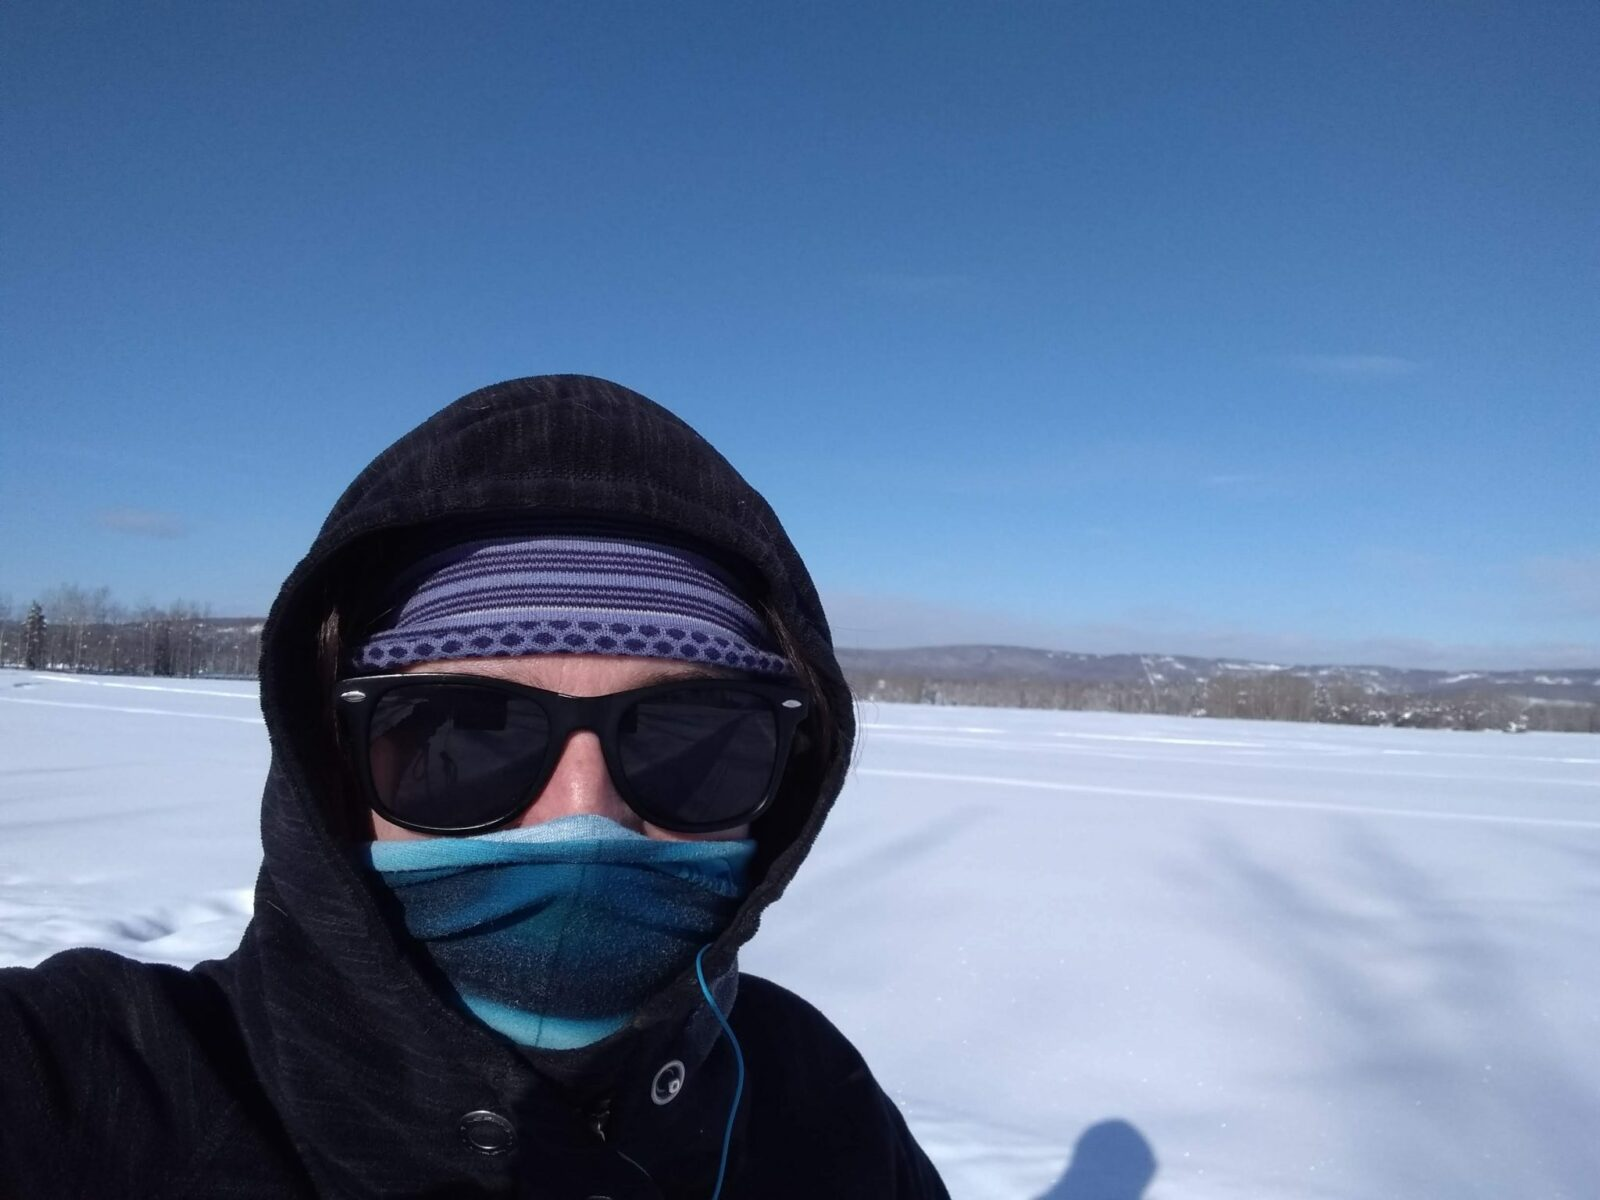 A person on a sunny cold day by a snowfield. The person is wearing sunglasses, a wool headband and a buff as well as a hooded fleece jacket.